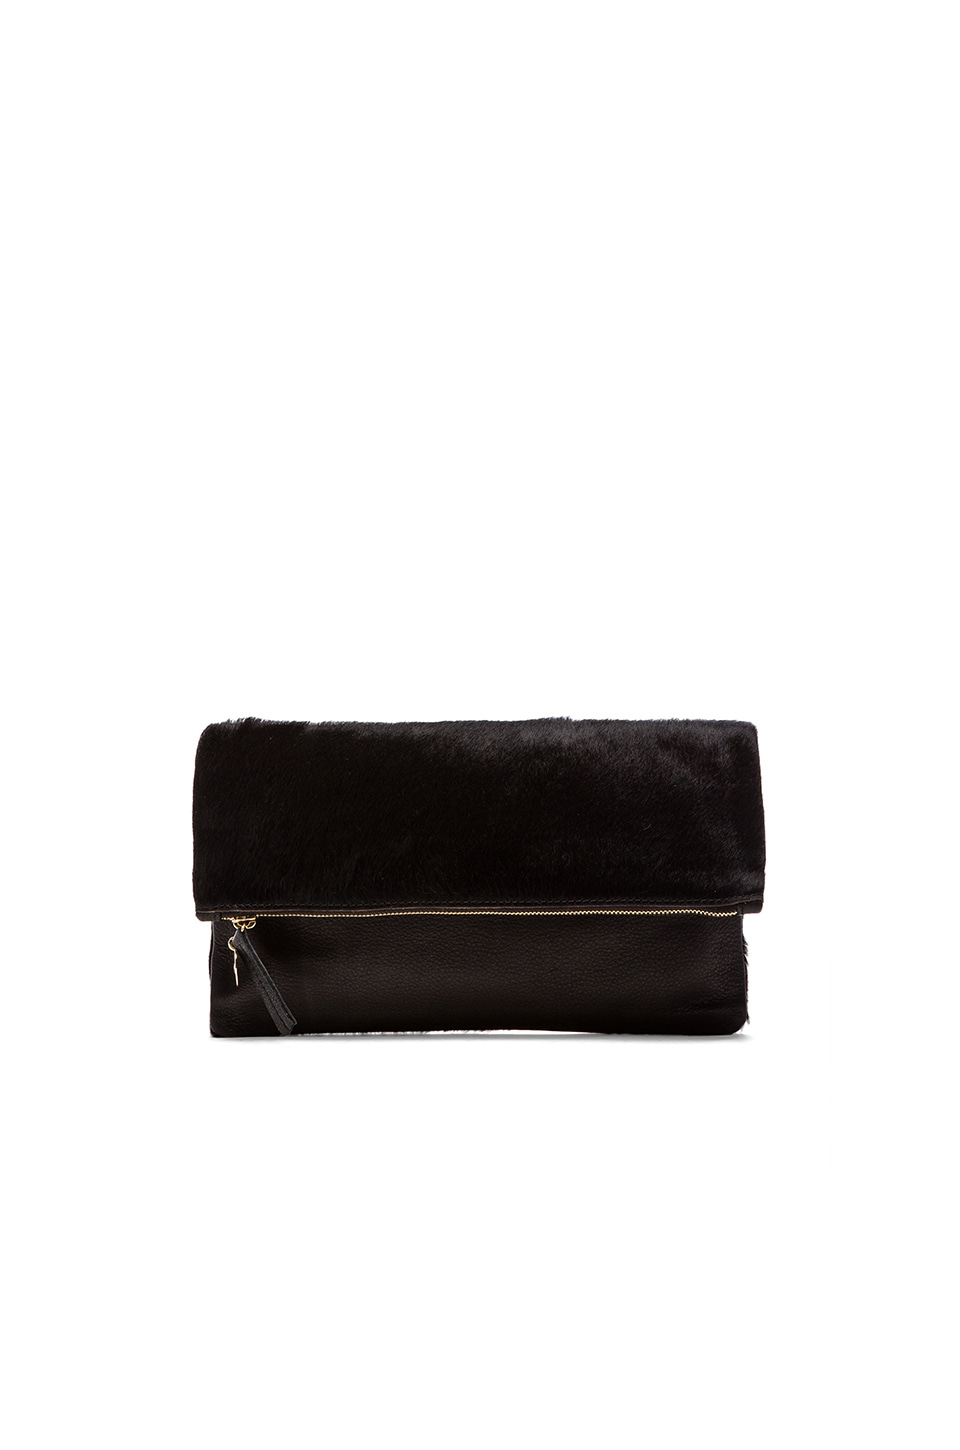 Clare V. Foldover Clutch in Black Hair